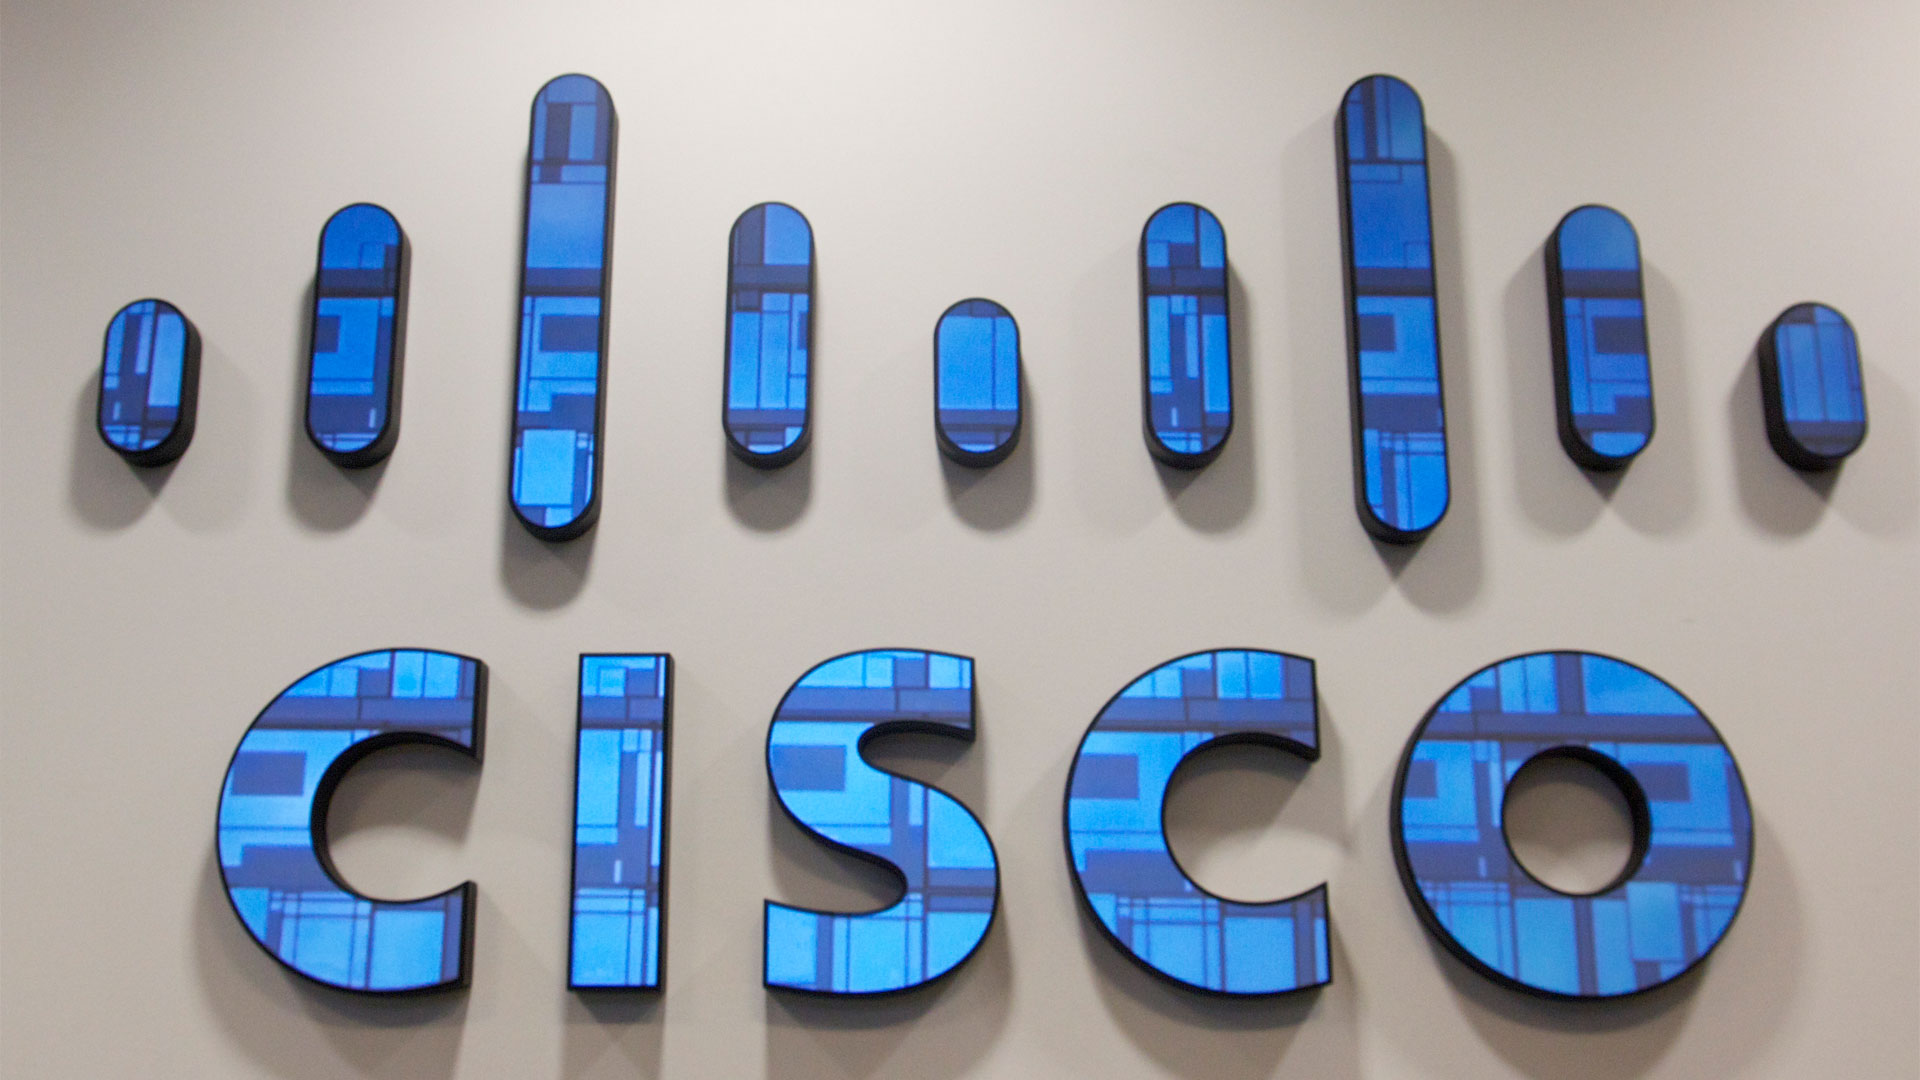 cisco systems background